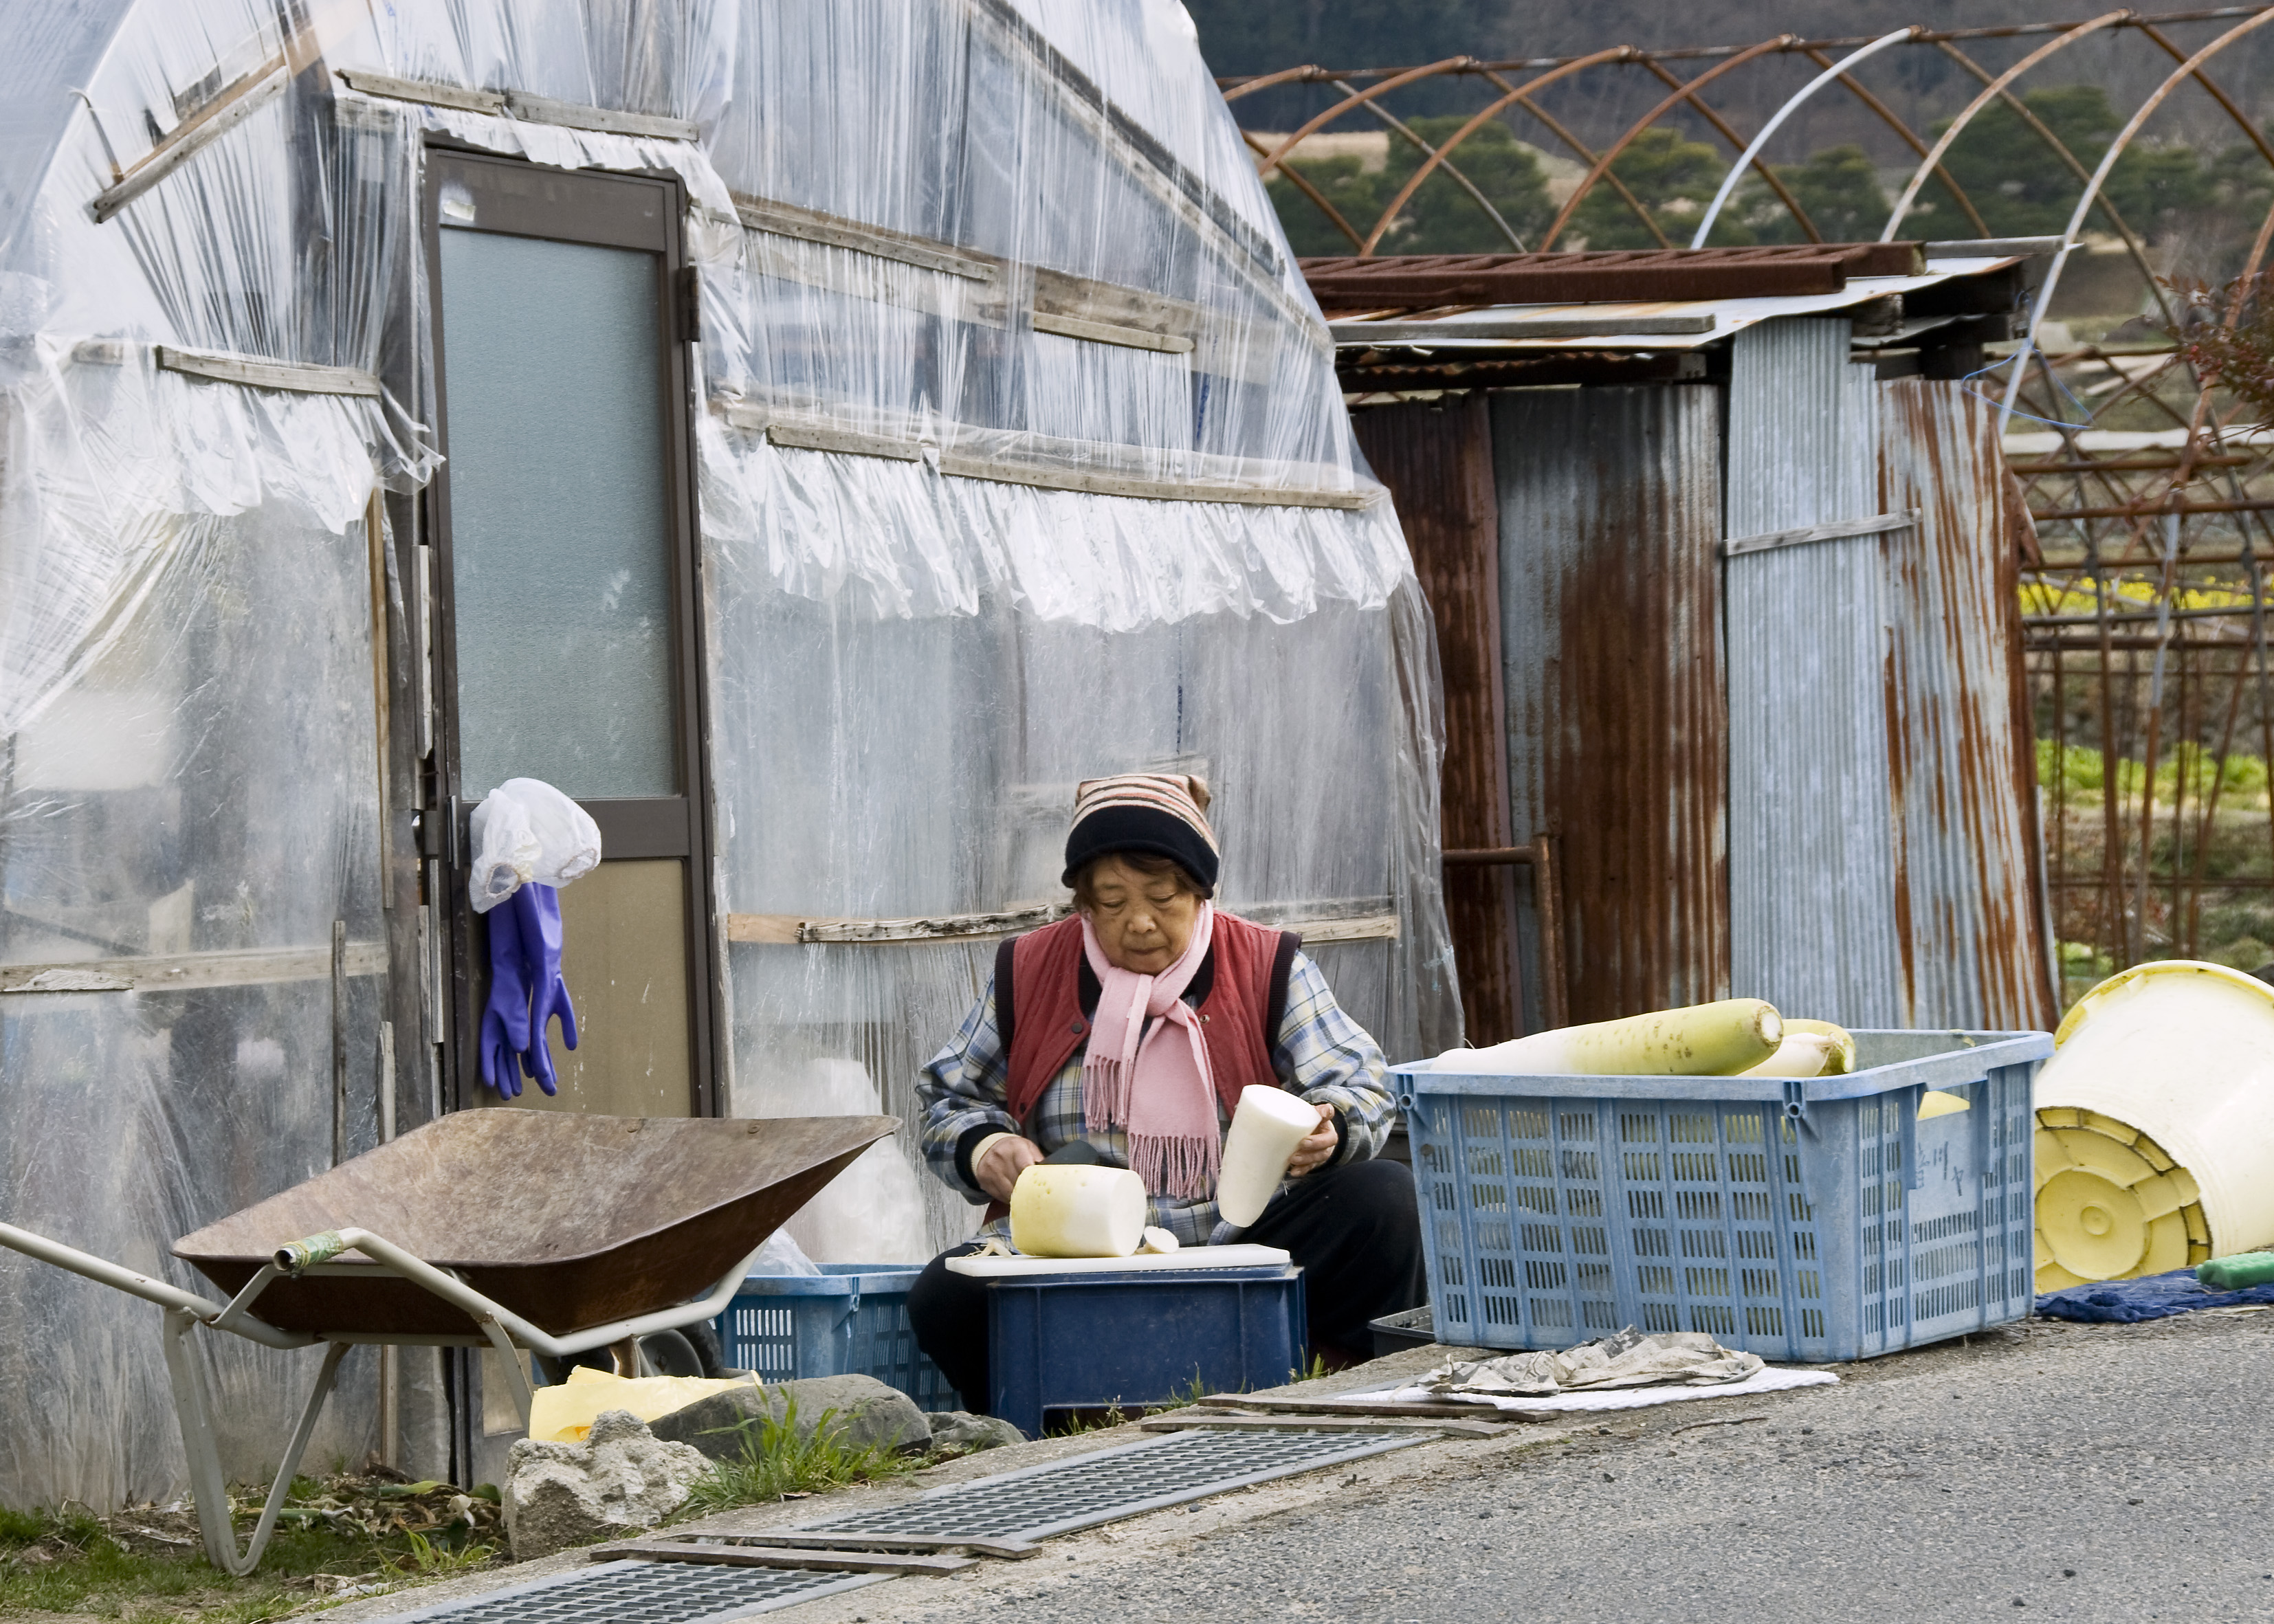 Japanese farmworker